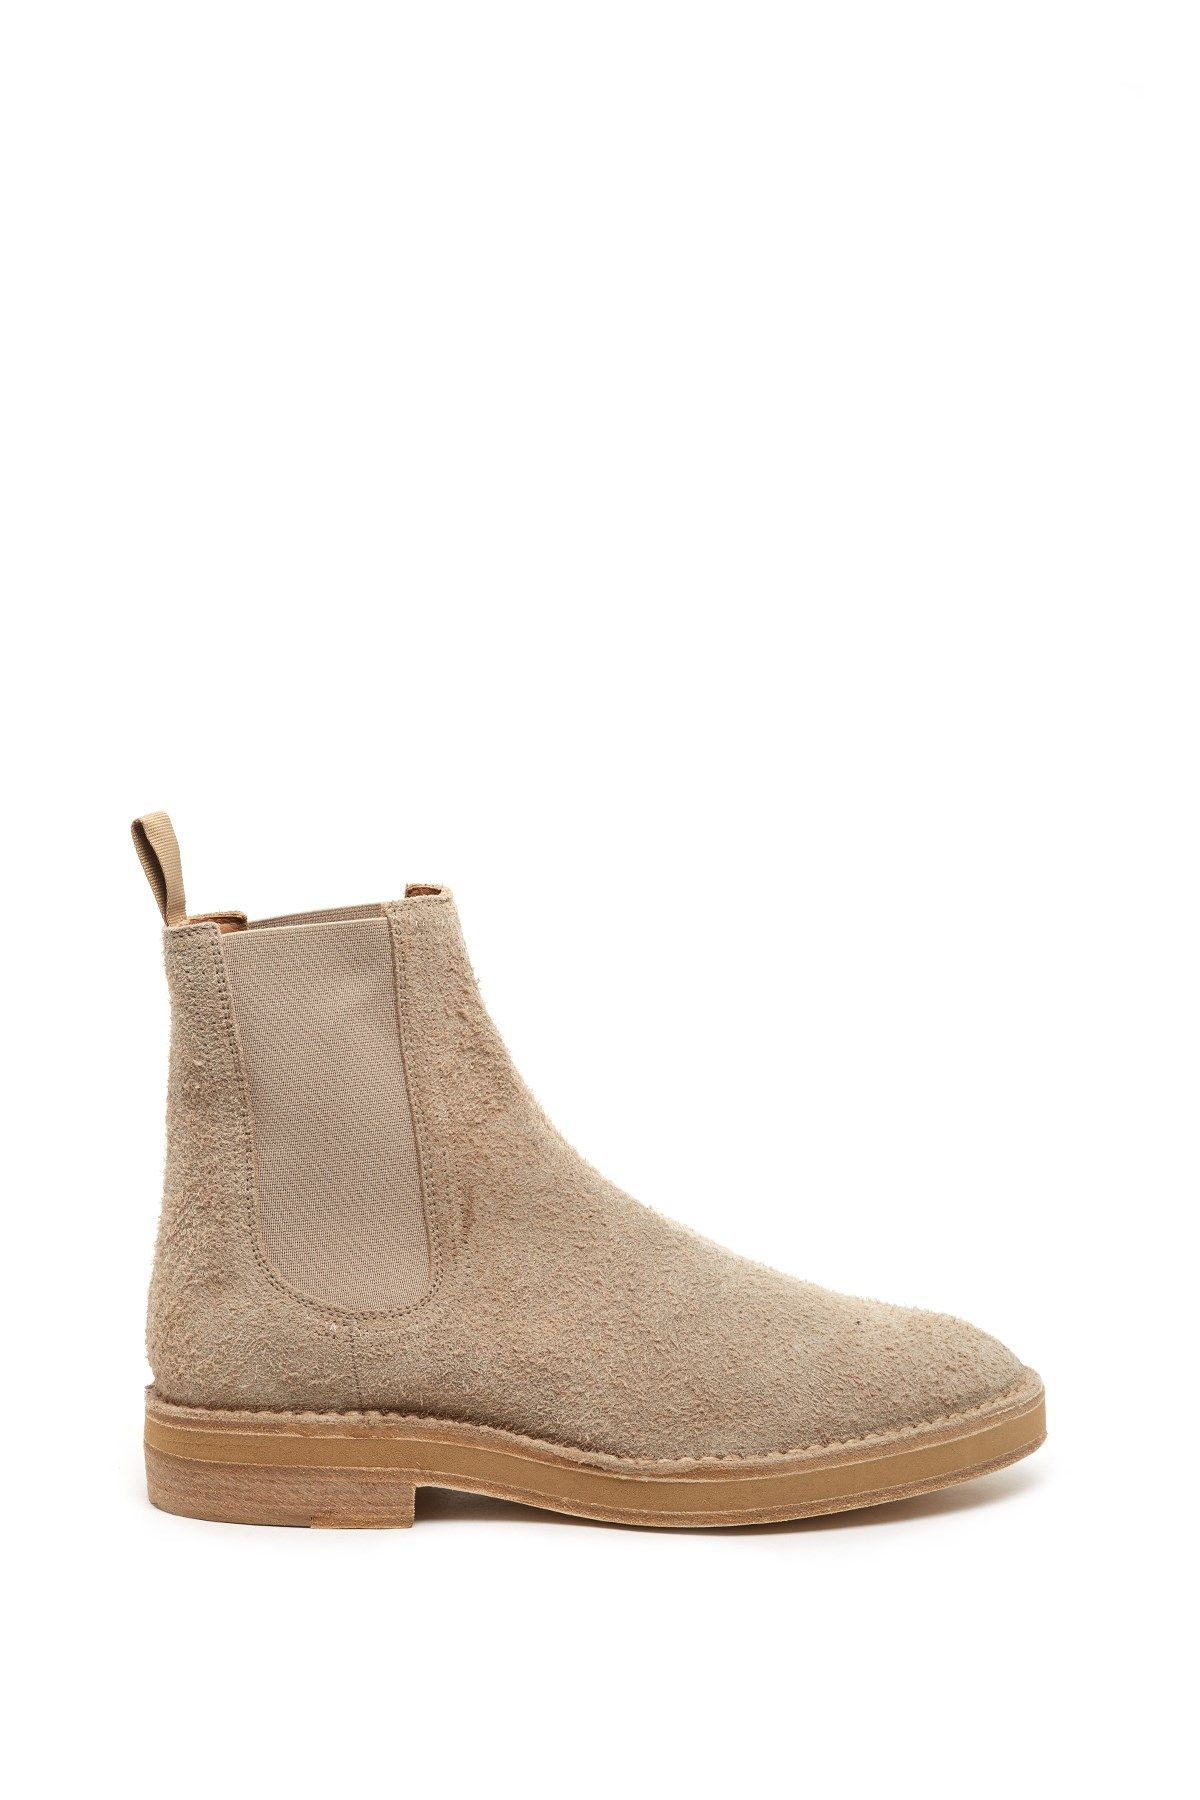 79e6a9638 YEEZY shaggy suede chelsea boots.  yeezy  shoes